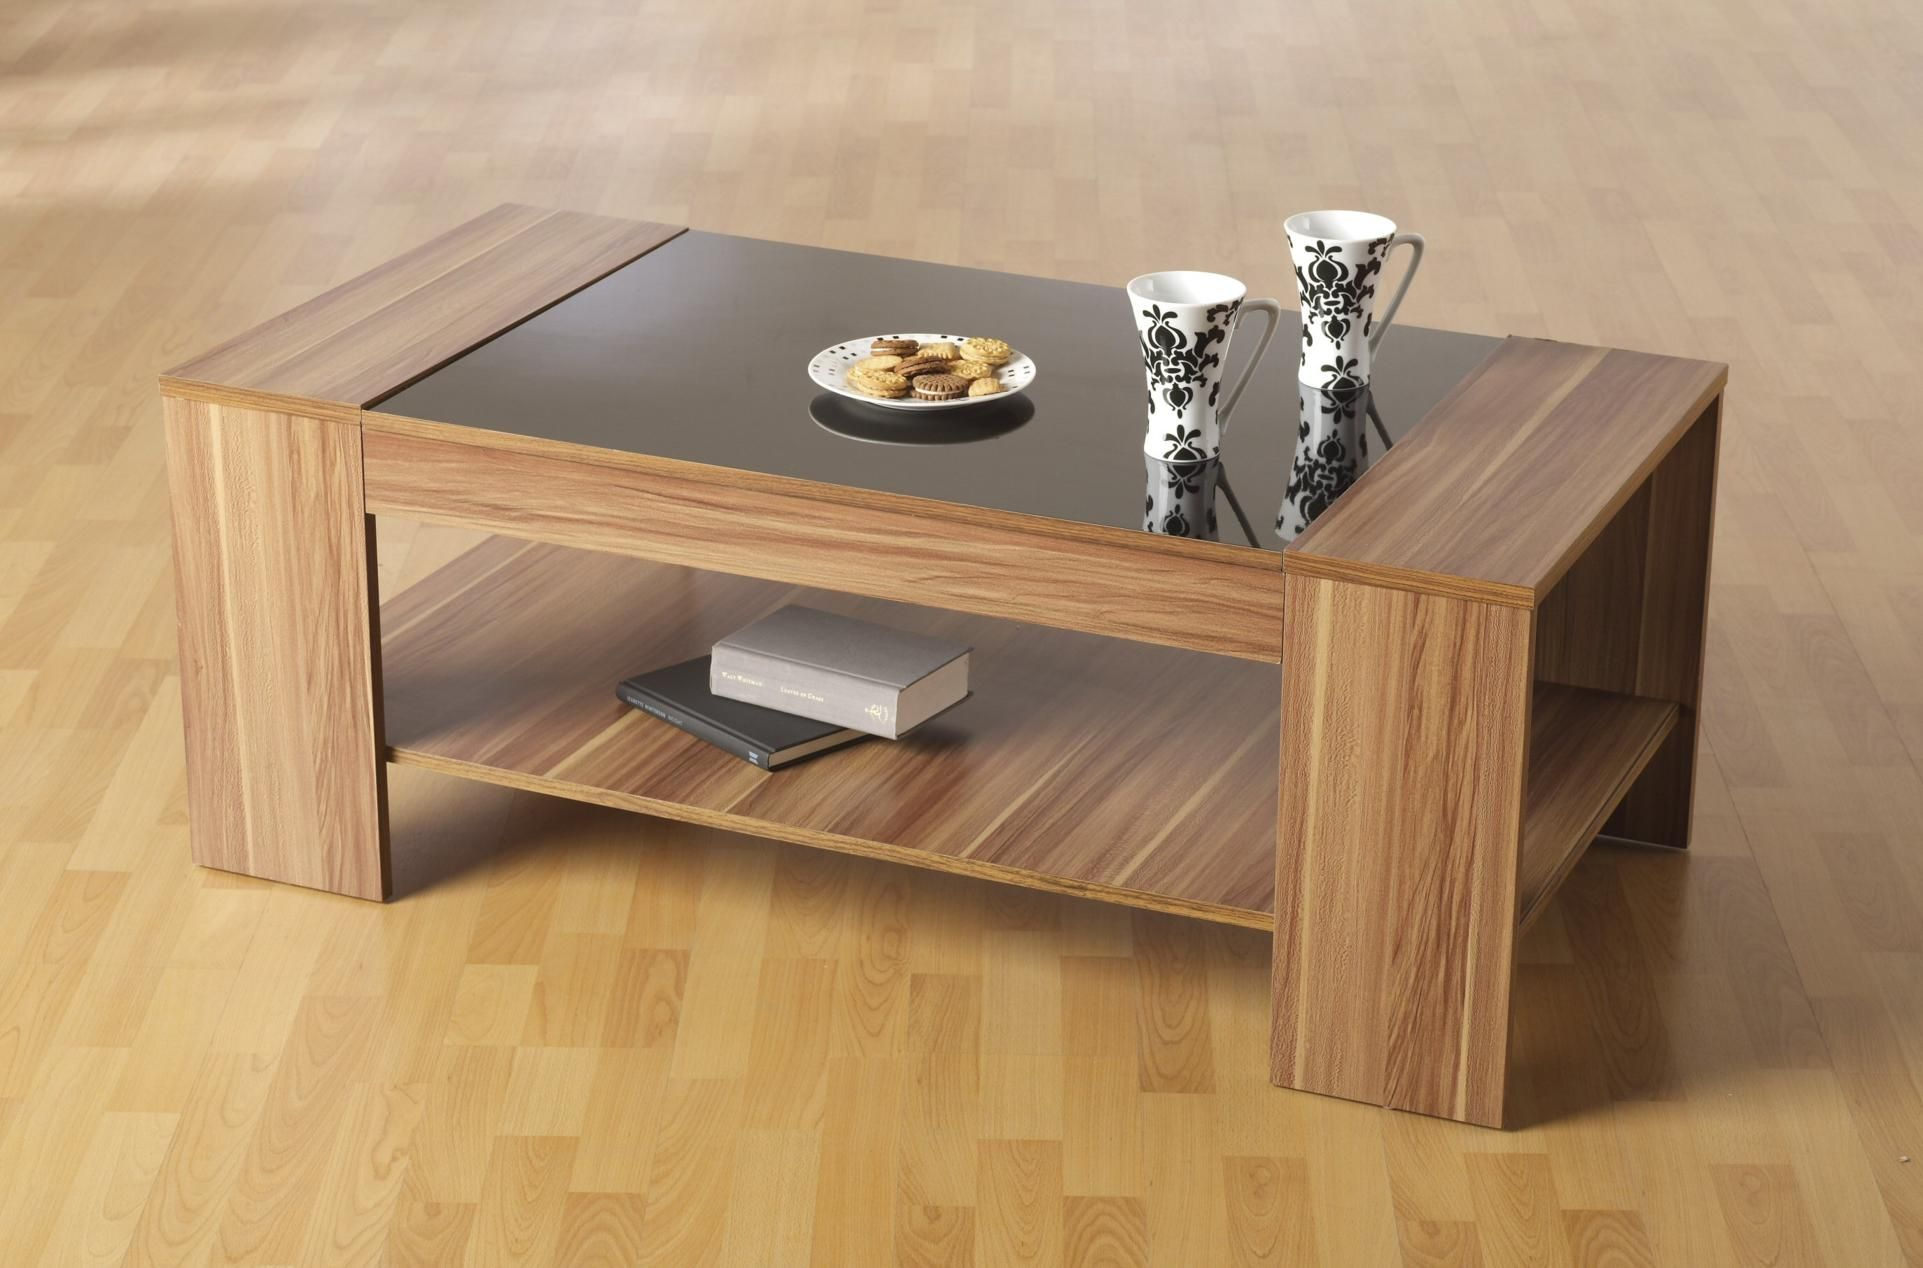 Image Result For Coffee Table Designs Joinery Pinterest Table